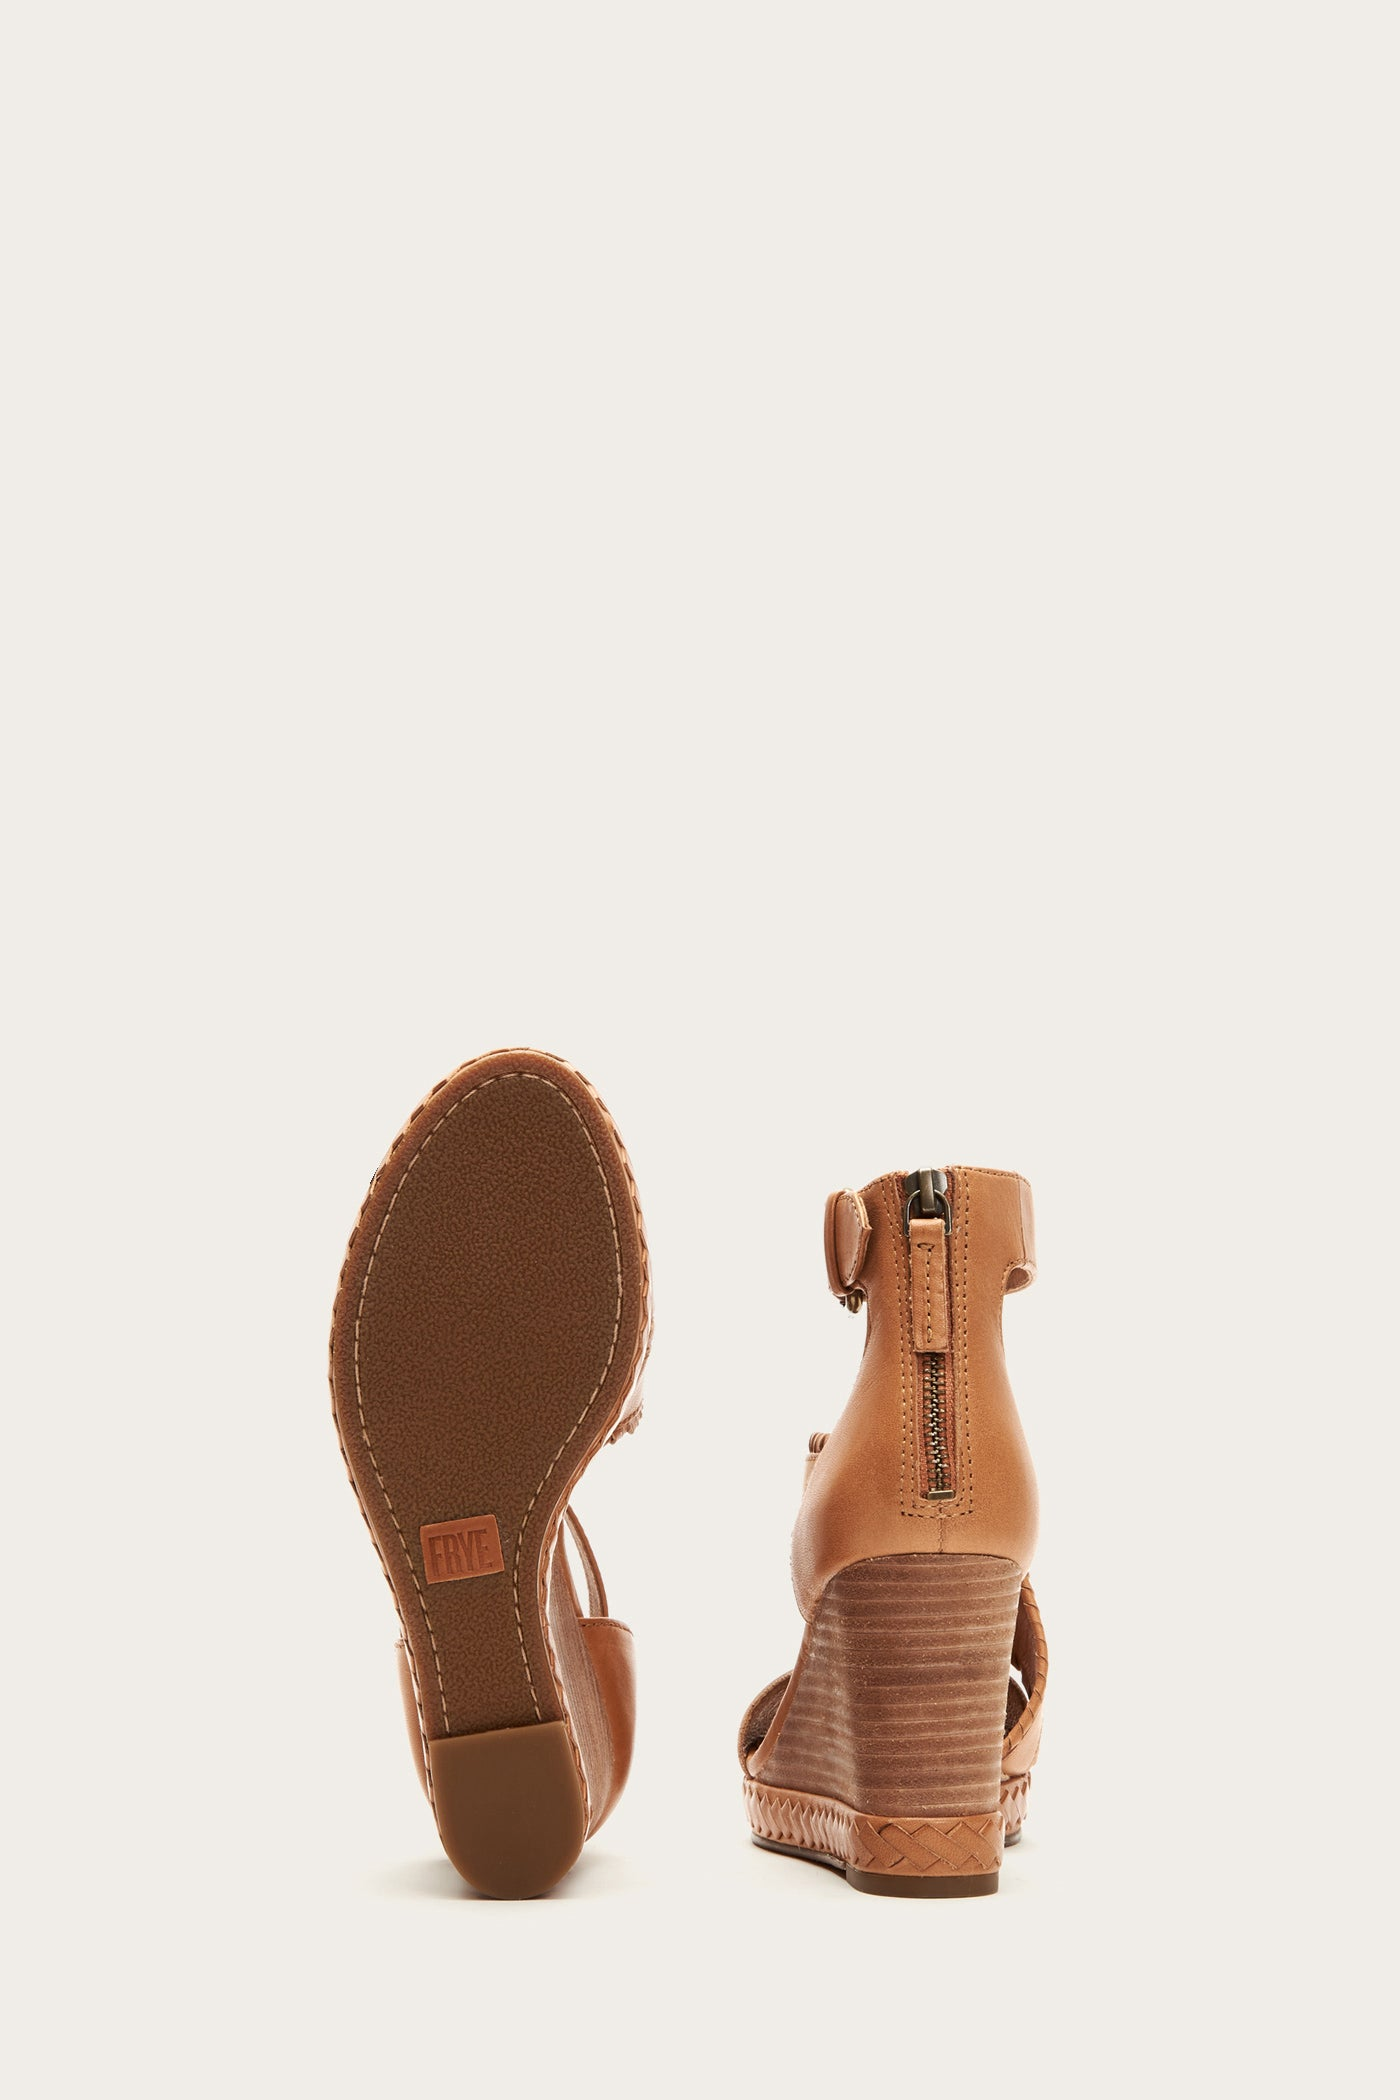 Riviana Feather Wedge | FRYE Since 1863